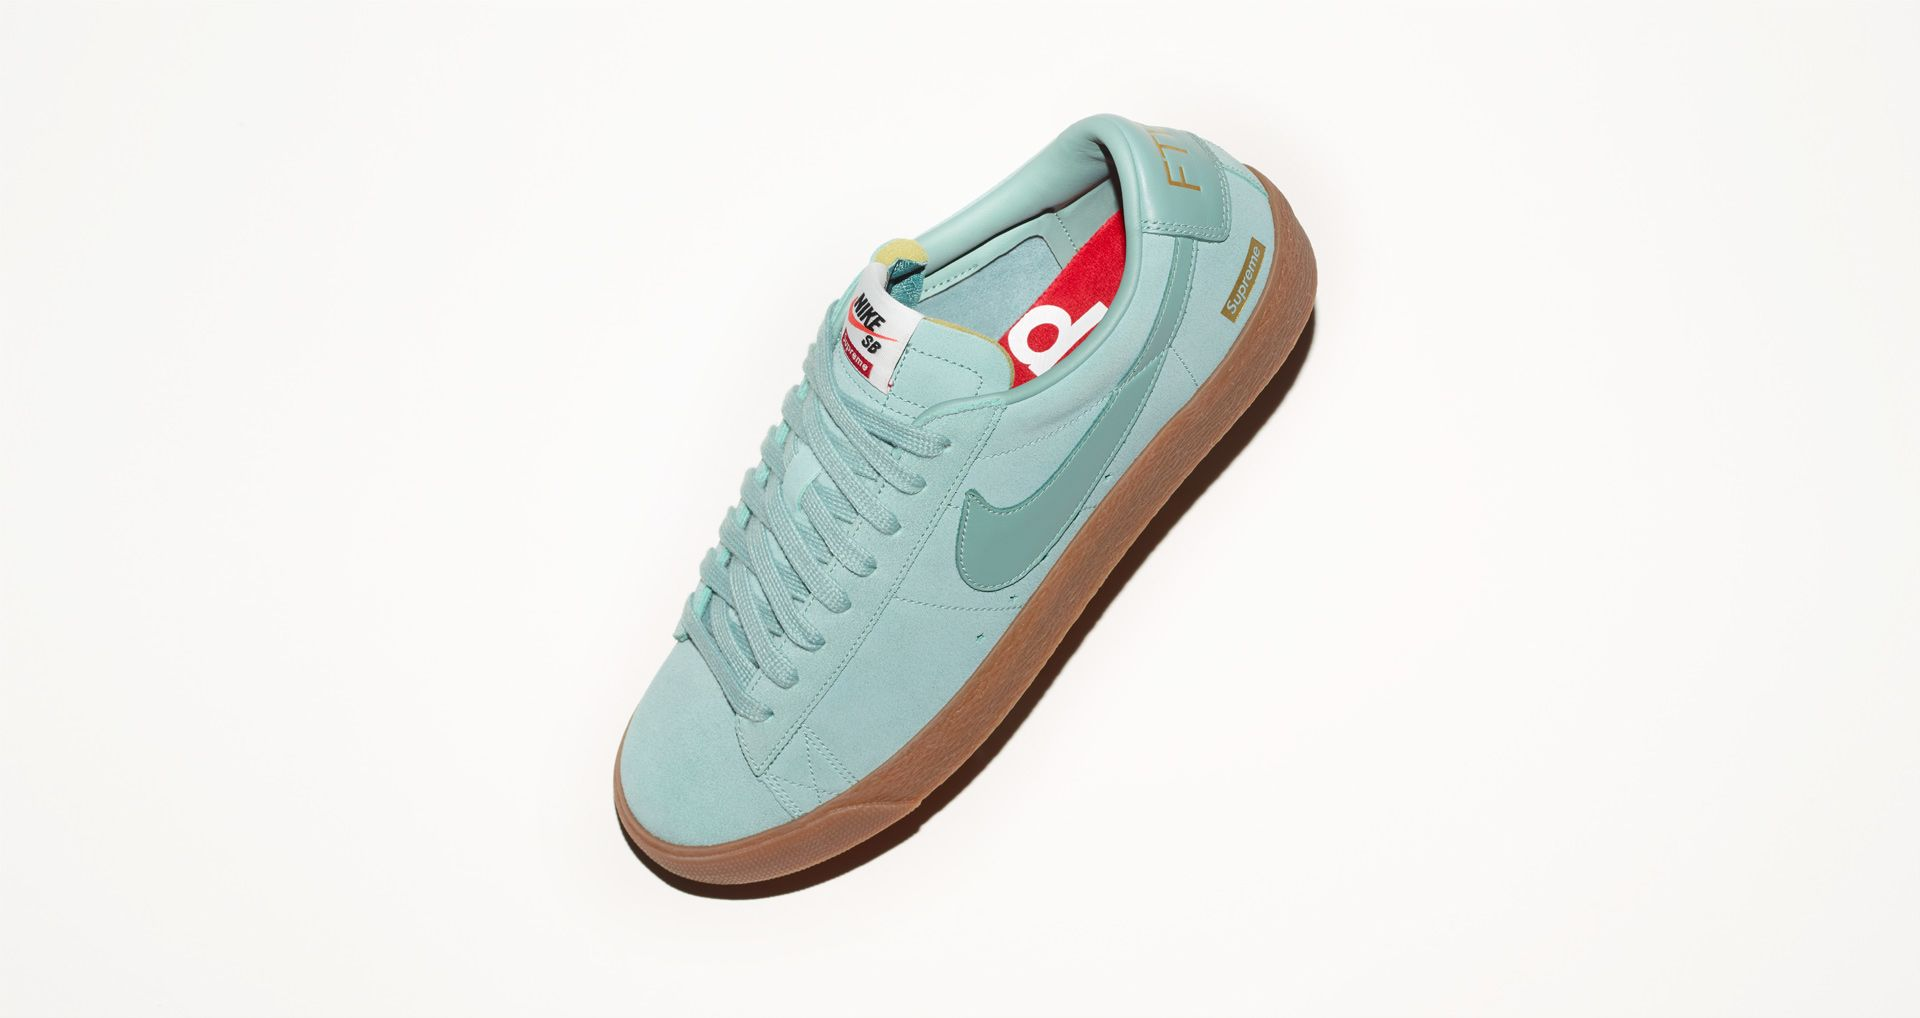 premium selection 1550d fbe49 Nike Blazer Low GT x Supreme 'Cannon' Release Date. Nike⁠+ SNKRS